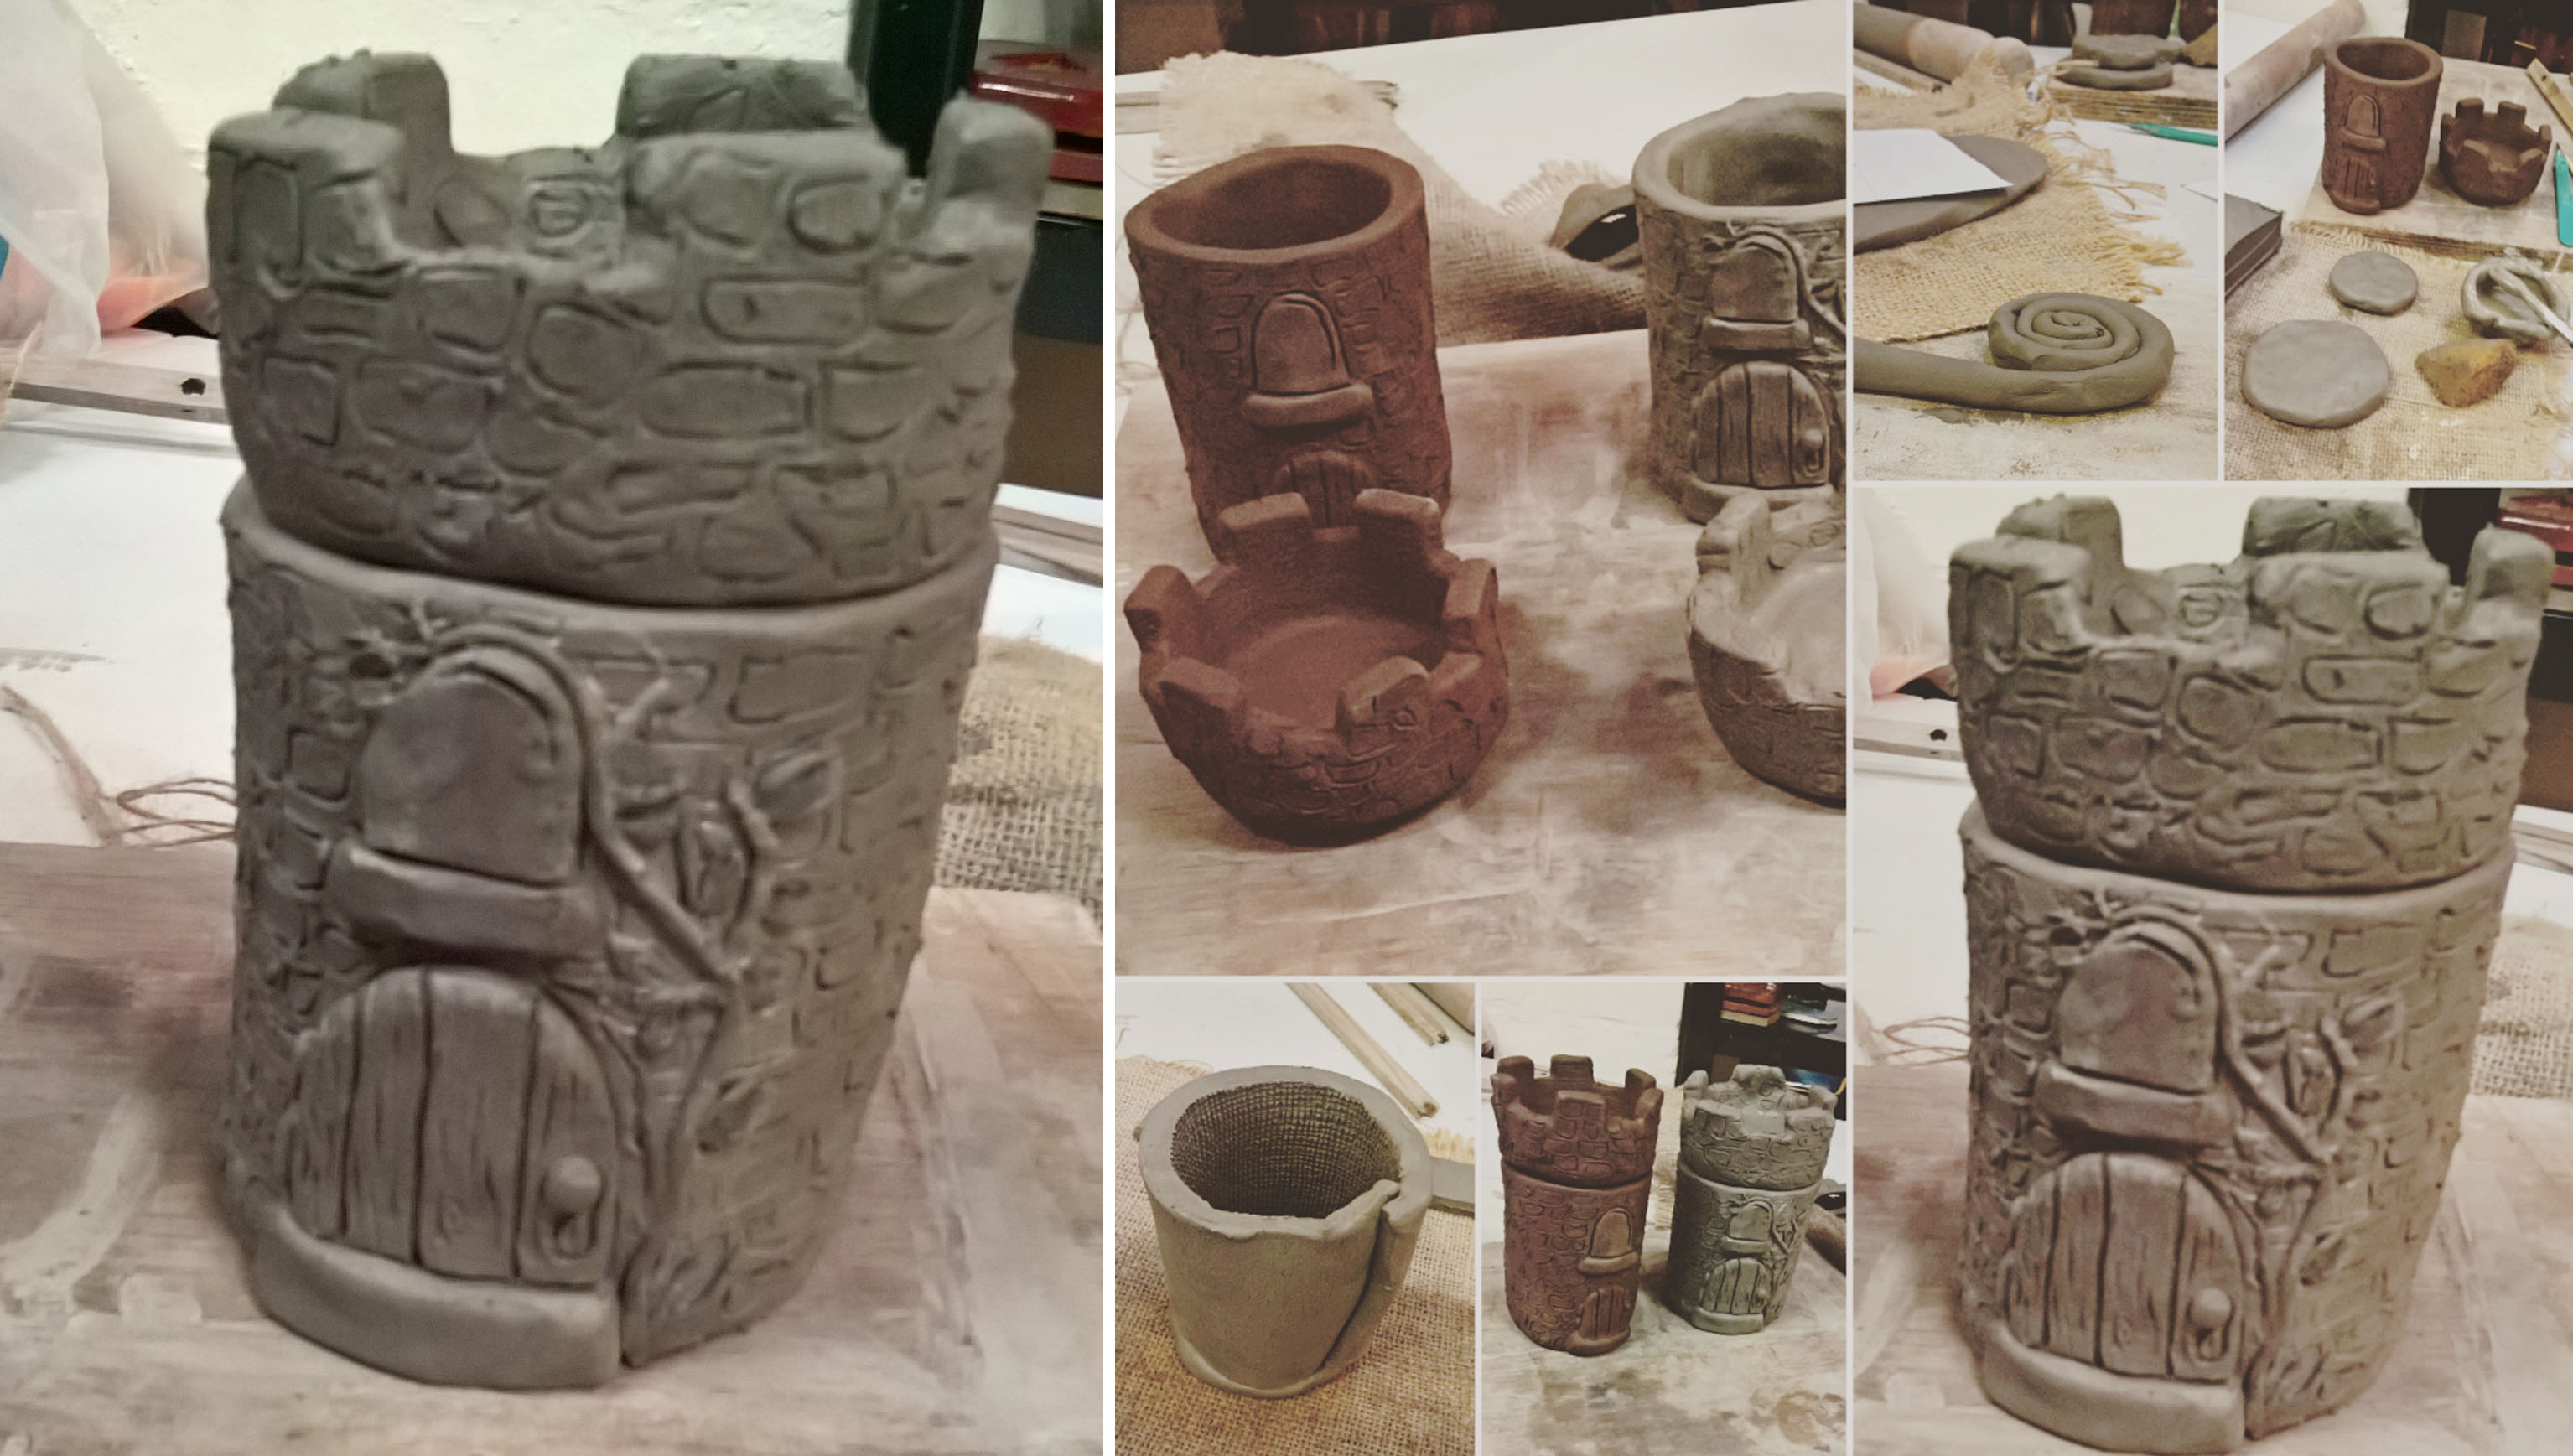 castle-turret-slab-and-coil-work-lisa-shambrook-greenspace-carers-class-2016